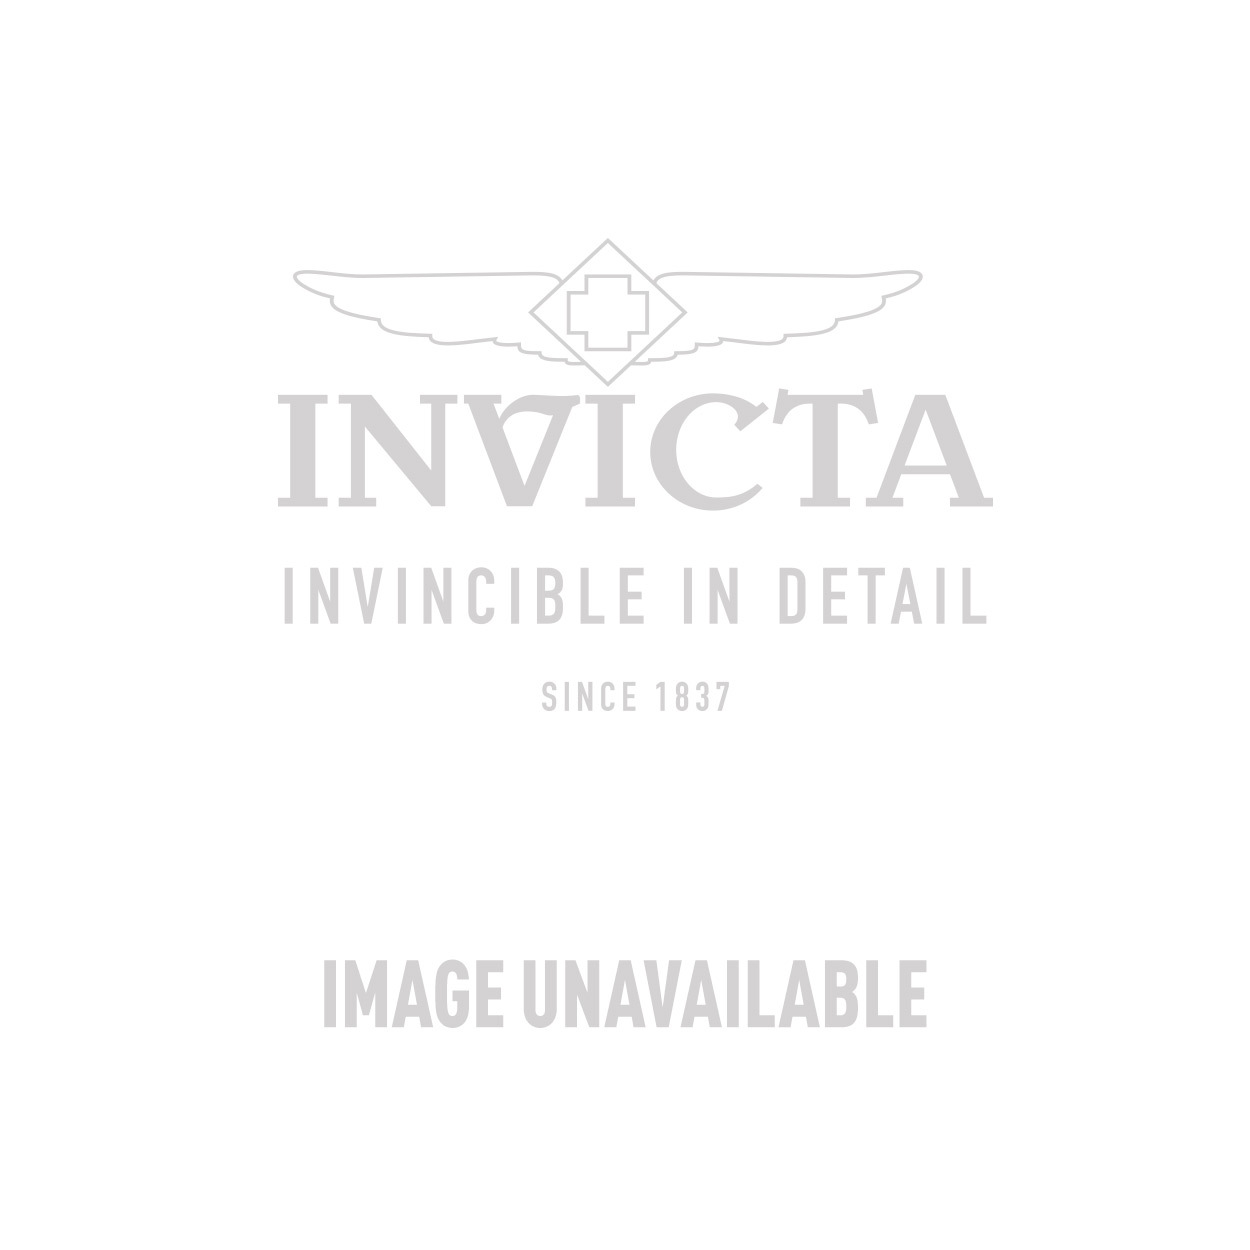 Invicta S1 Rally Swiss Made Quartz Watch - Gold case with Gold, Black tone Stainless Steel, Polyurethane band - Model 0899